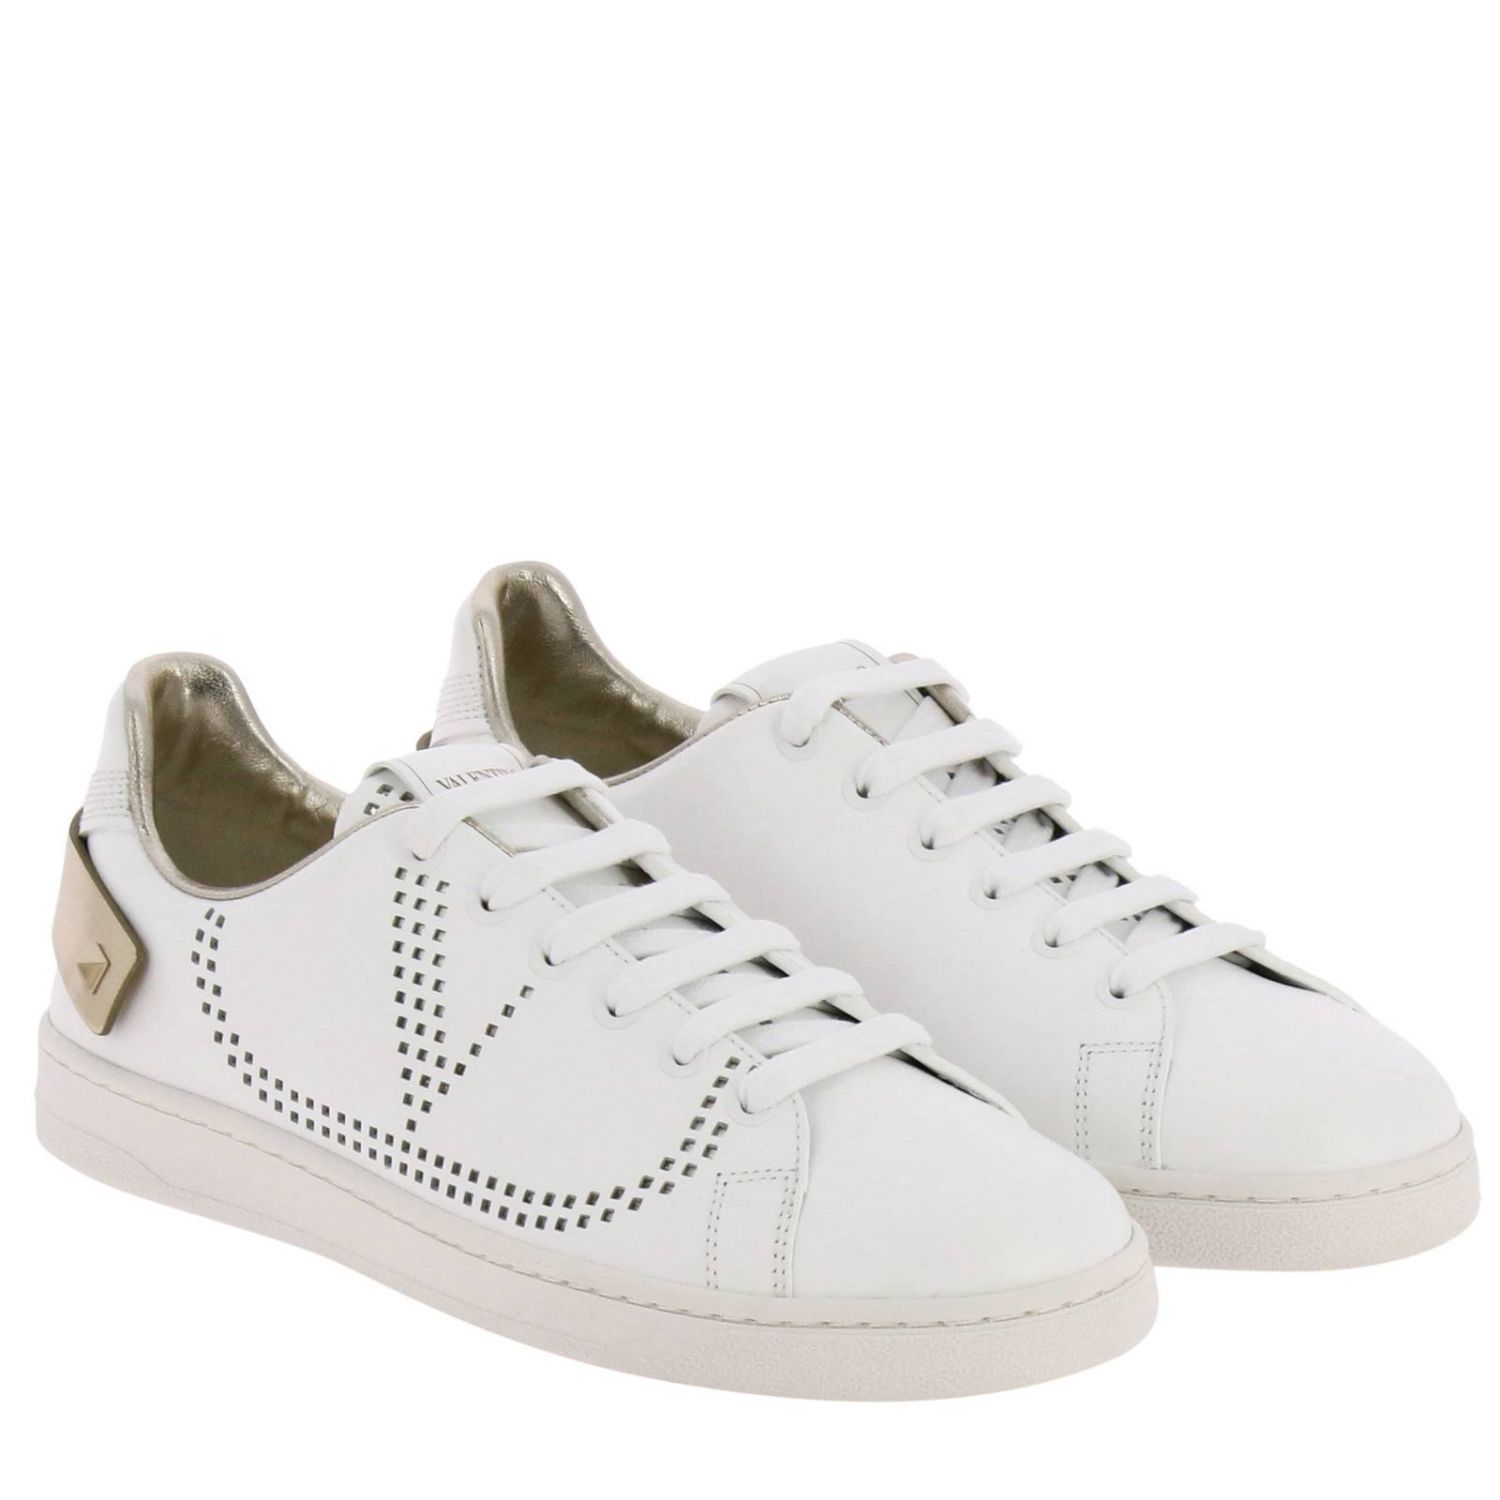 Valentino Garavani Backnet leather sneakers with micro perforated logo white 2